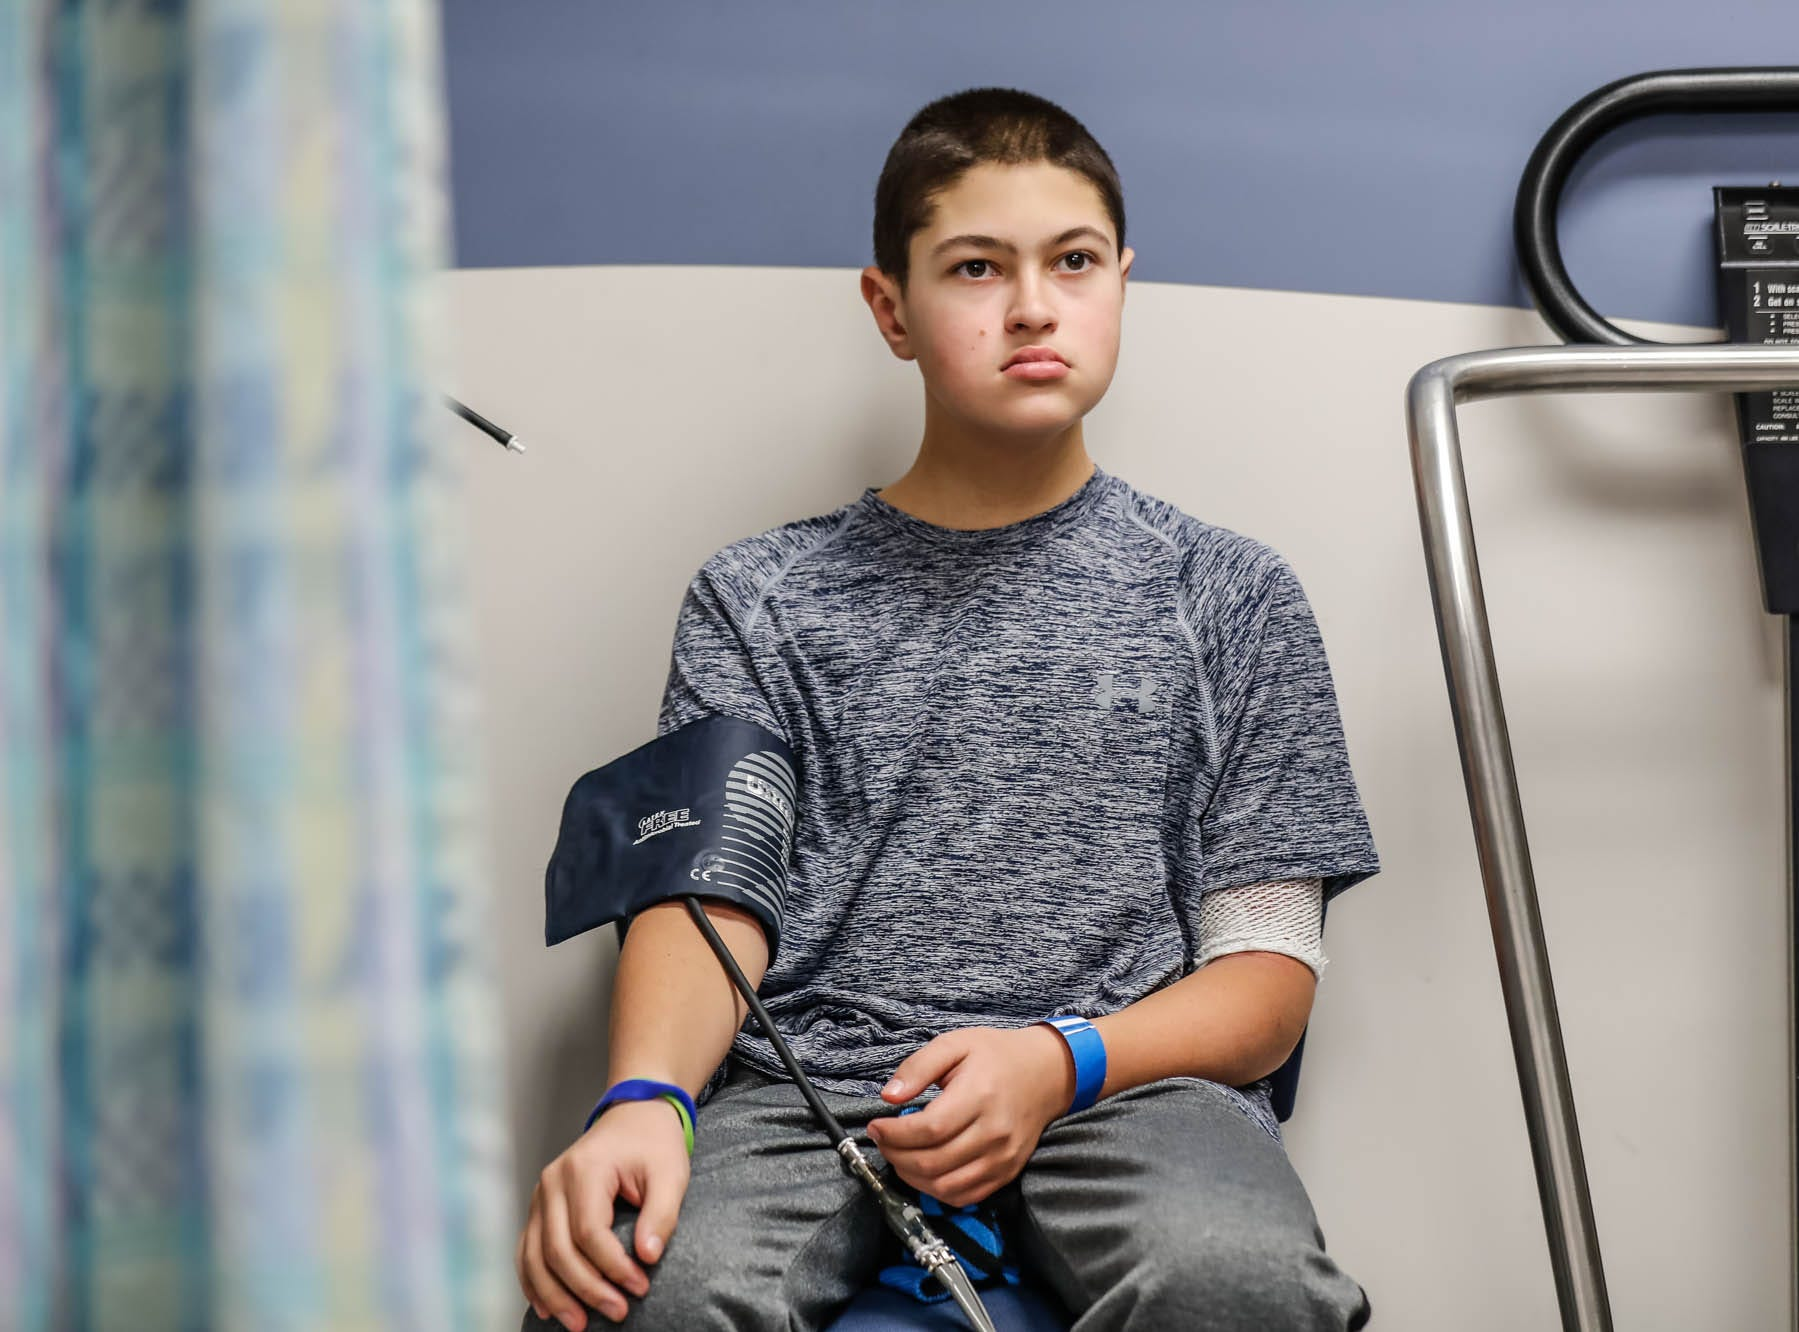 After open-heart surgery and with a cadaver valve, teen baseball standout can play again